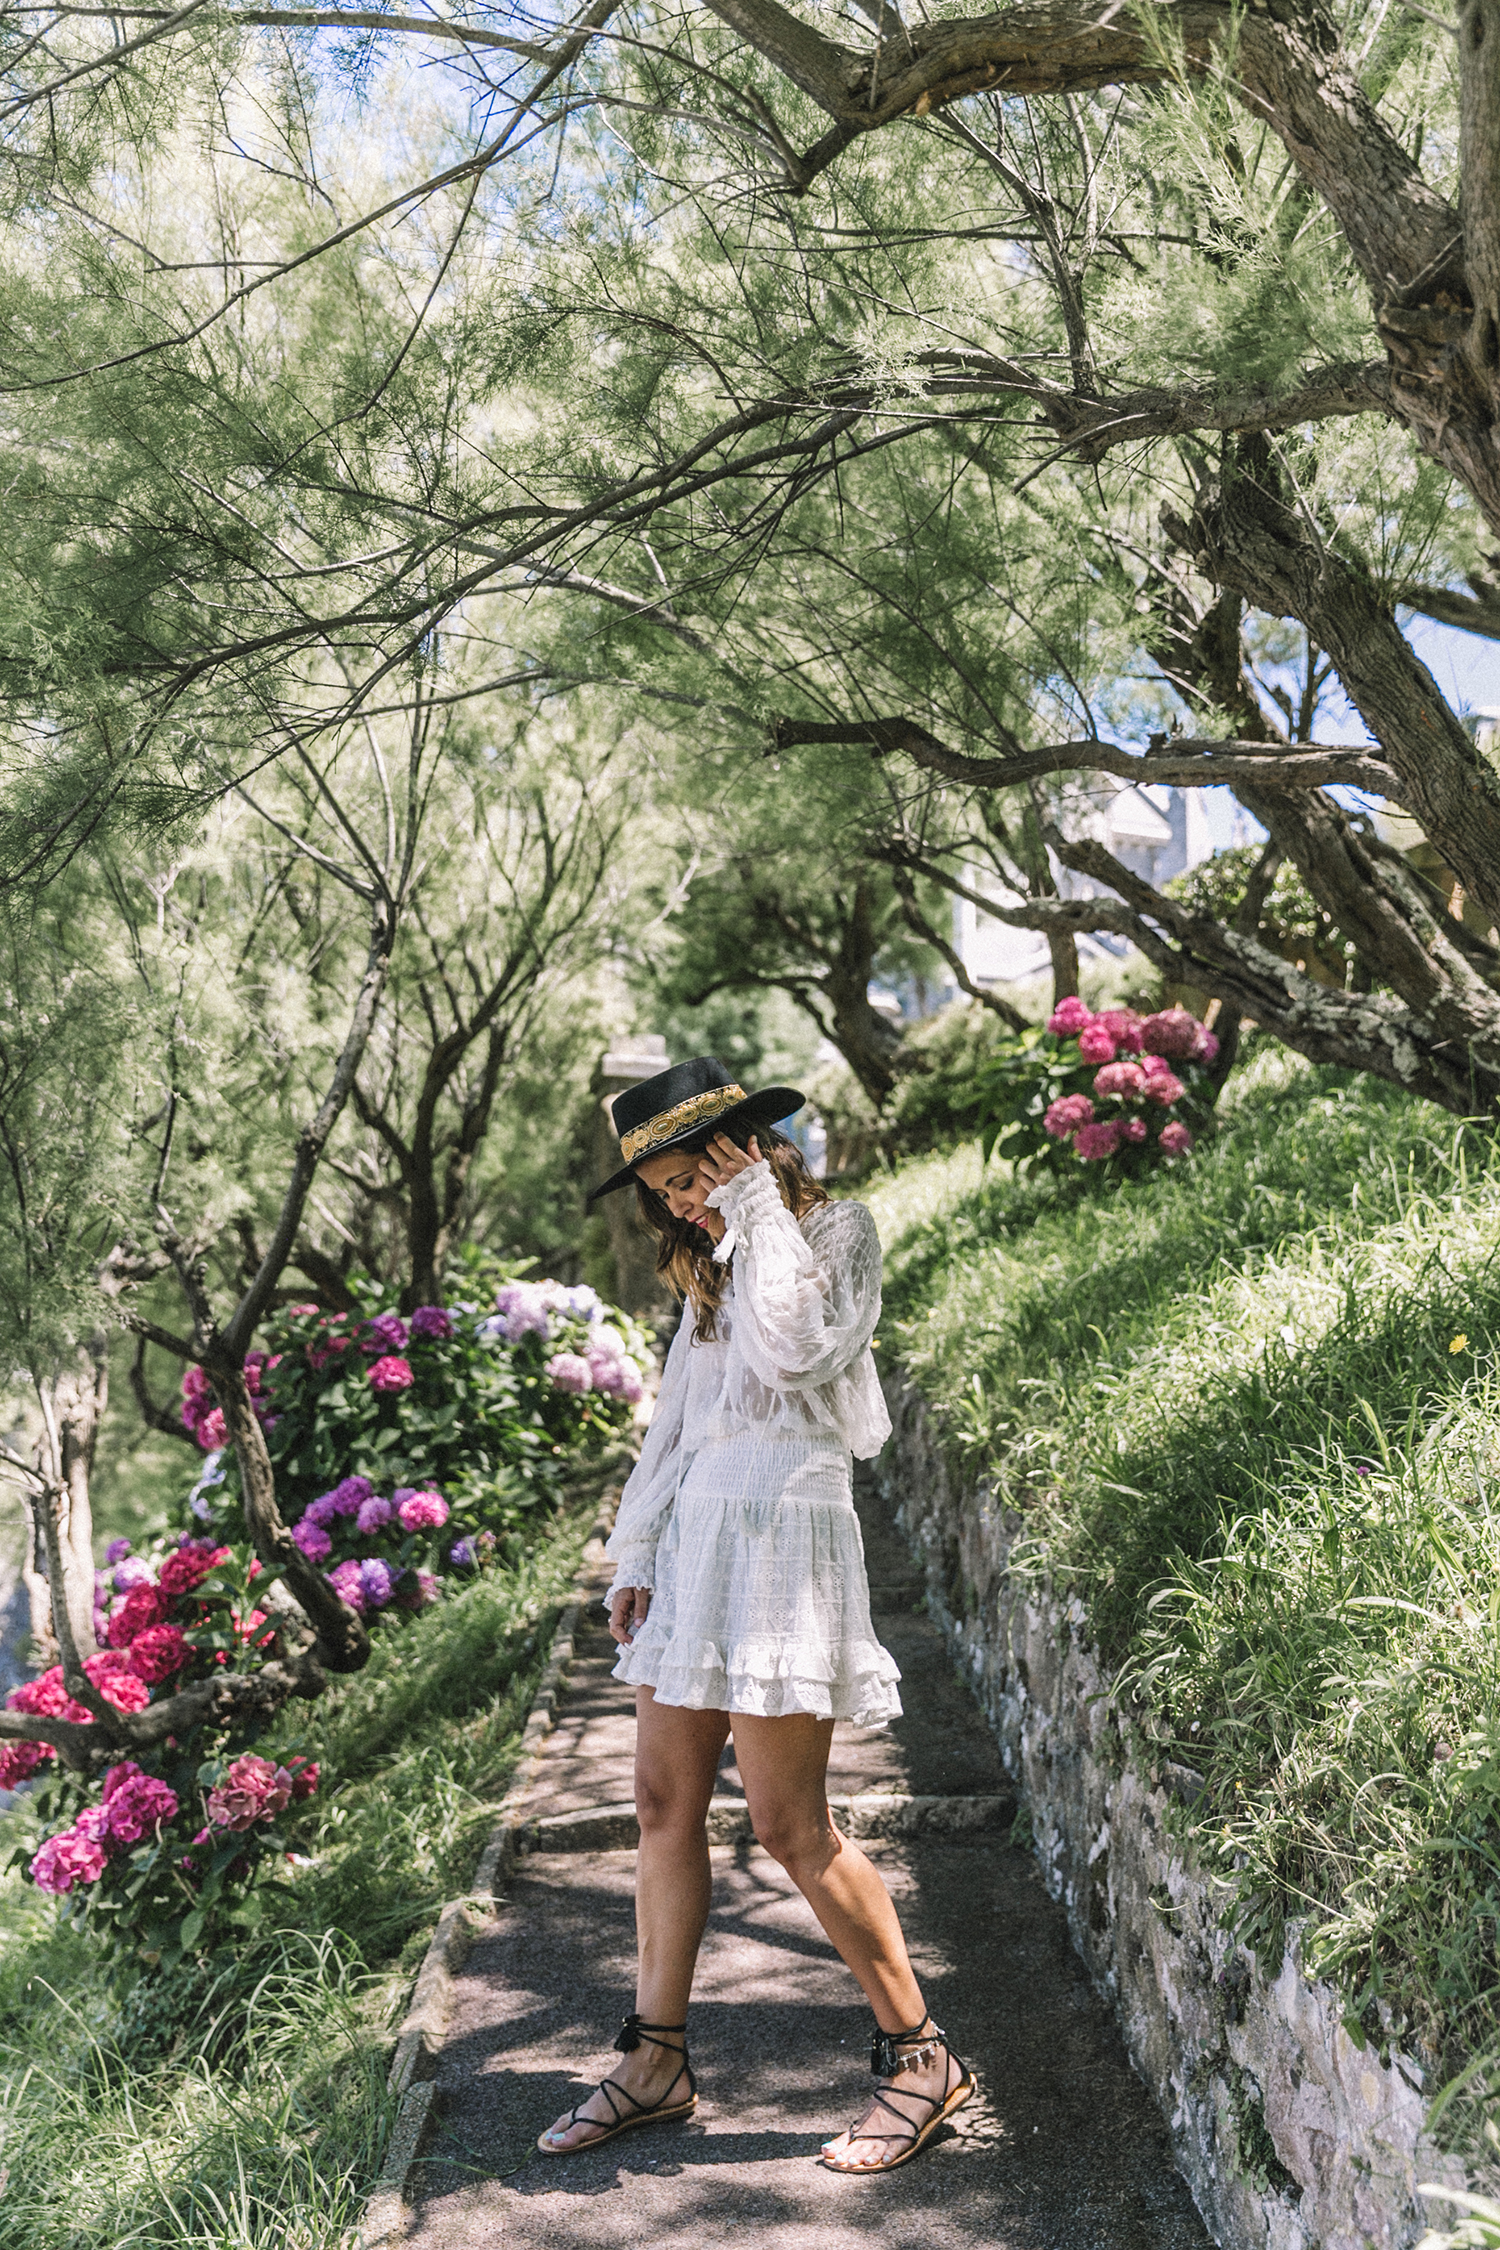 White_Outfit-Denim_Jacket-Lack_Of_Color_Hat-Outfit-Biarritz-Levis-Live_In_Levis-Street_Style-Summer-Boho_Skirt-Collage_Vintage-5